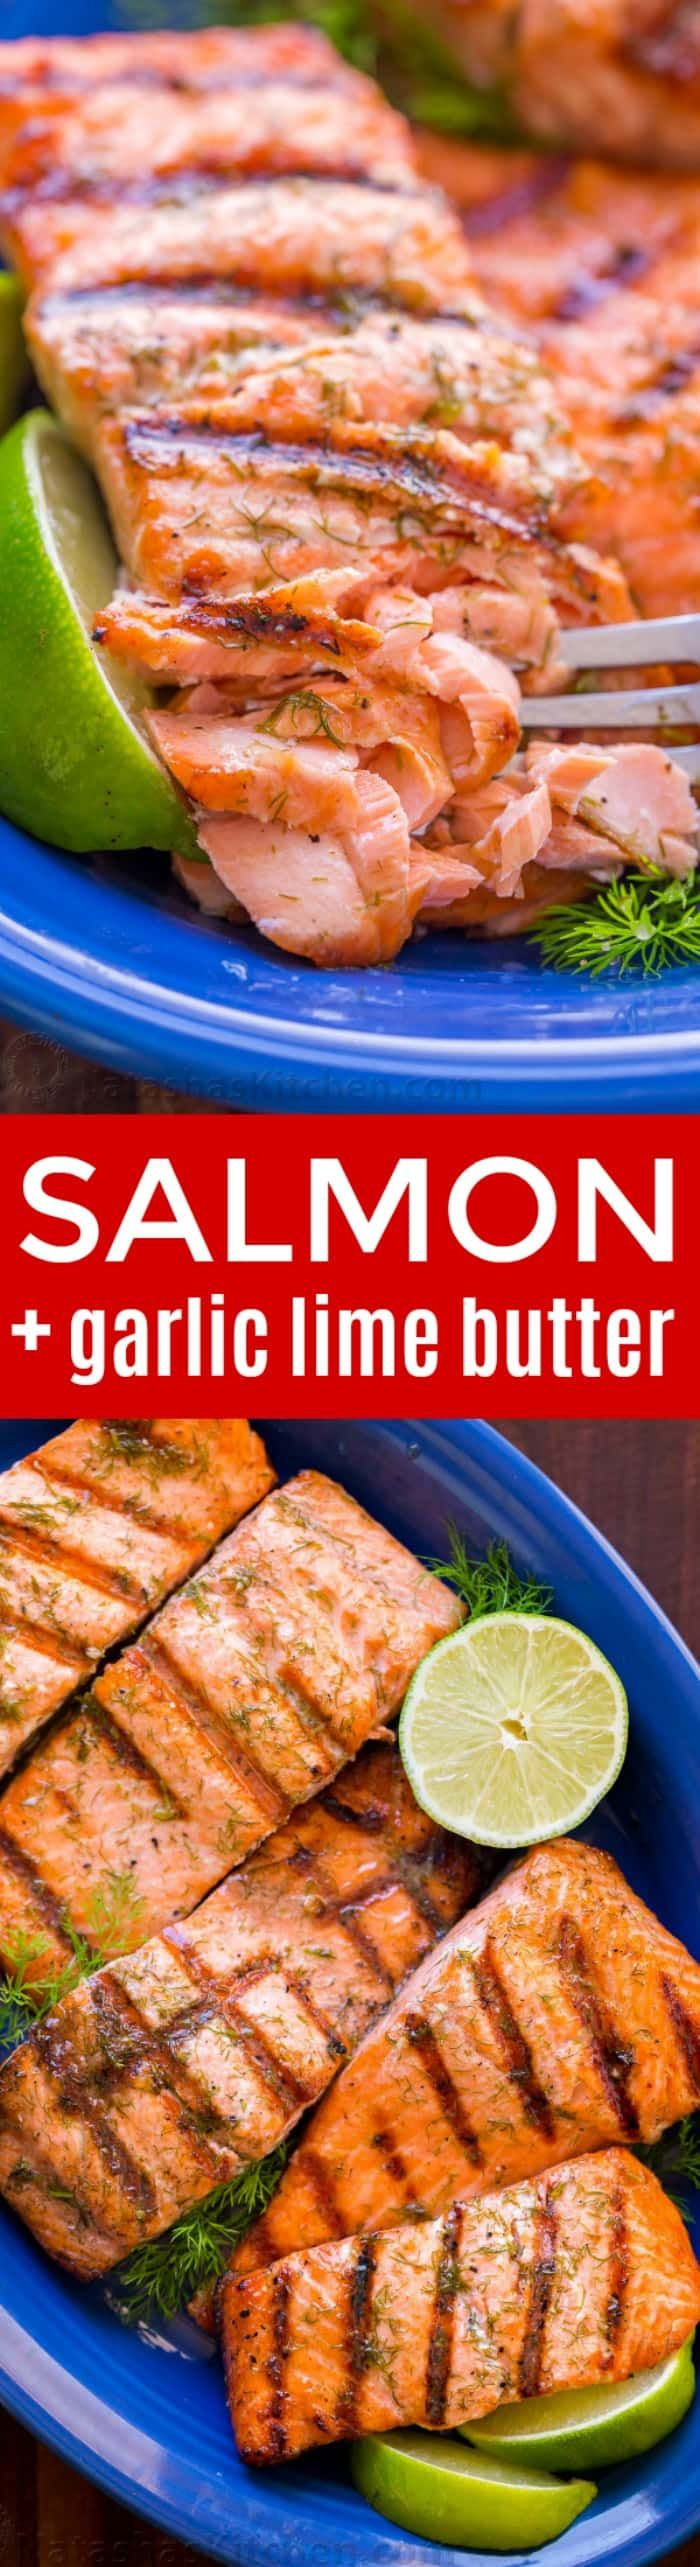 Break out the BBQ for this Grilled Salmon with Garlic Lime Butter and eat like you're on vacation! Go-To Grilled Salmon recipe - it excites your taste buds! Sponsored by @hookedonsalmon | natashaskitchen.com